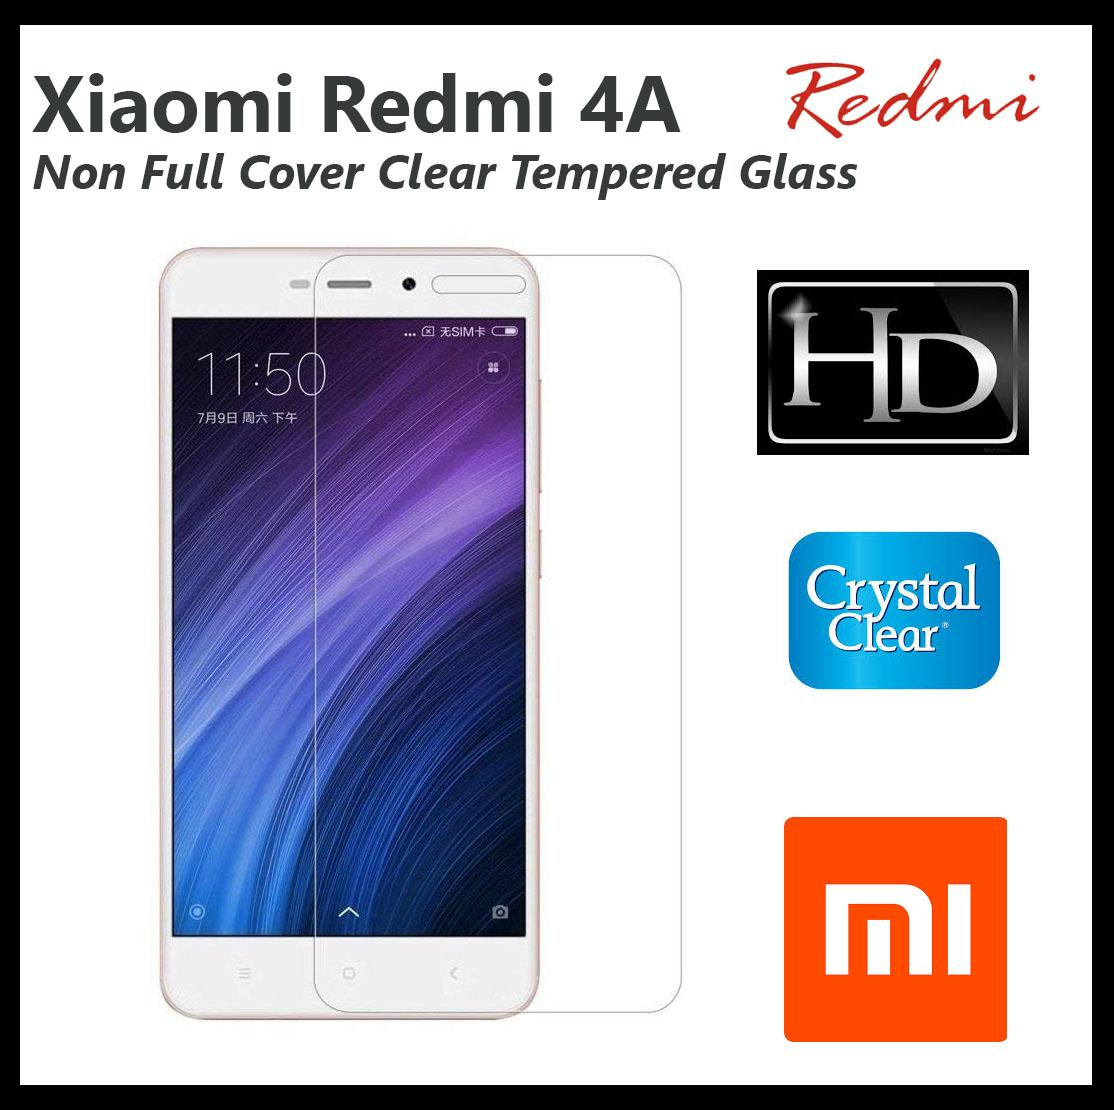 1x Xiaomi Redmi 4A Non Full Cover Clear Tempered Glass Screen Protector